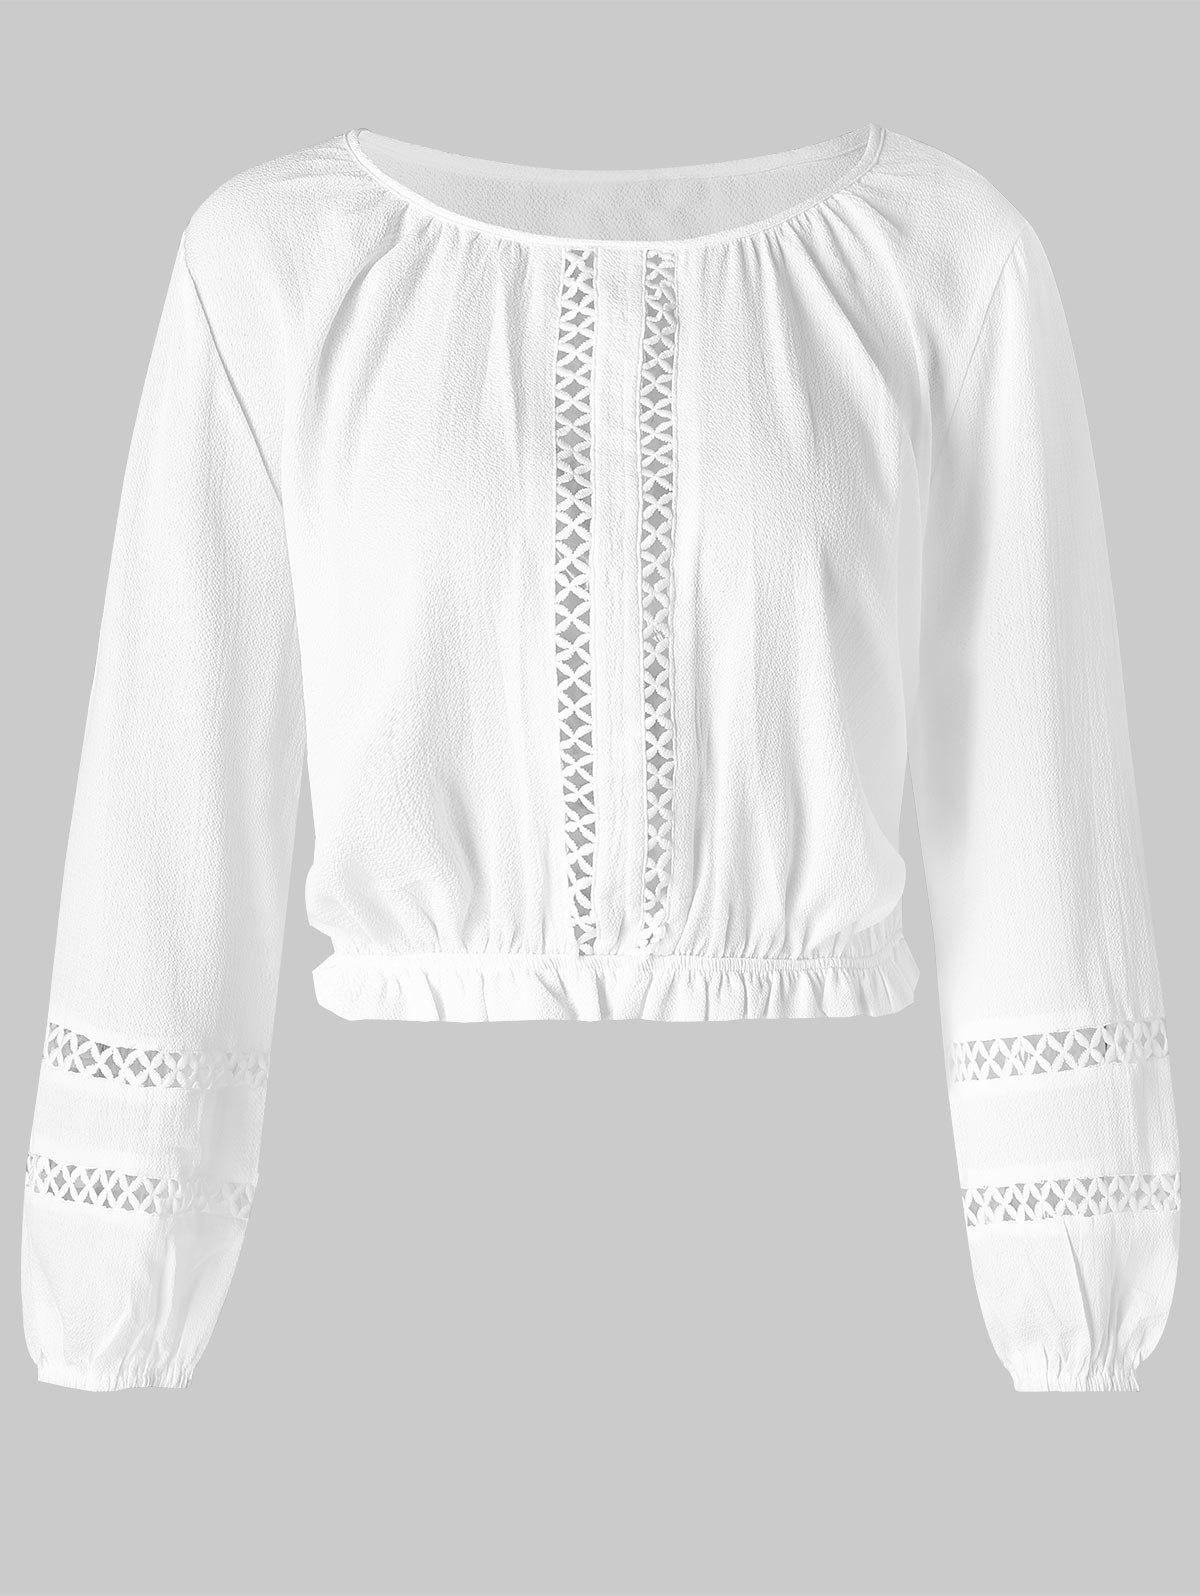 Chic Hollow Out Cropped T Shirt